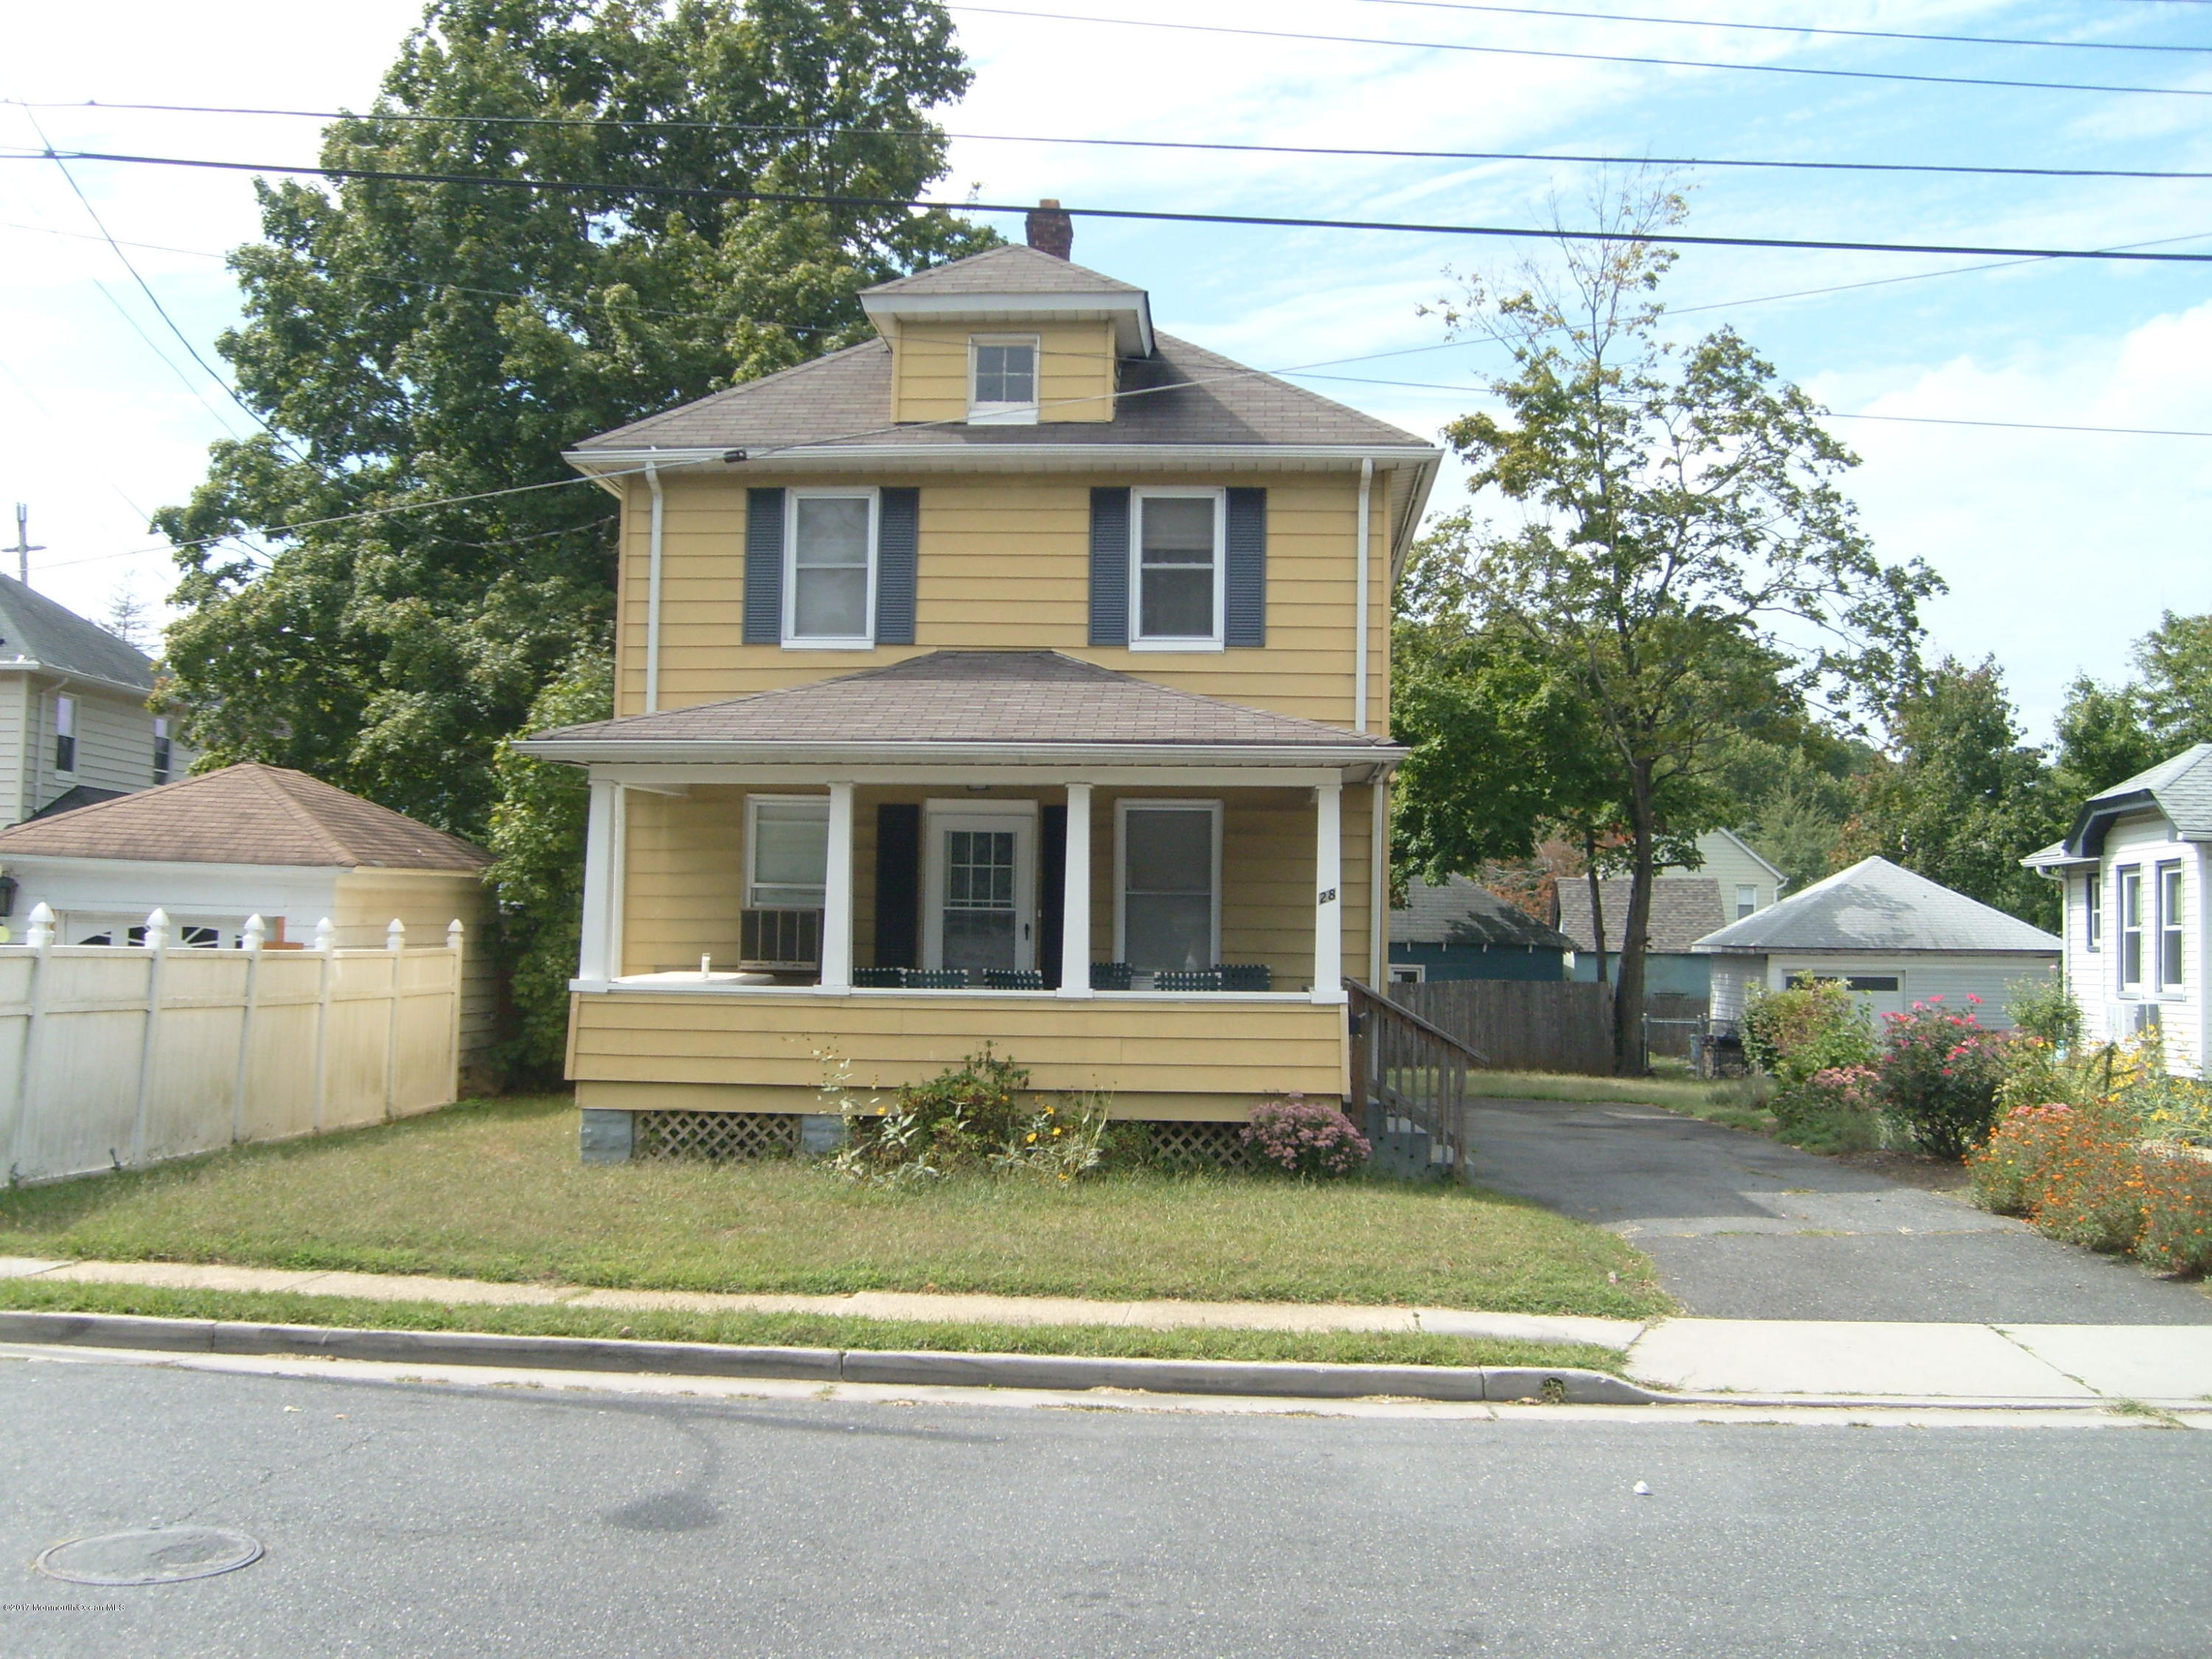 28 CLIFFORD PLACE, RED BANK, NJ 07701